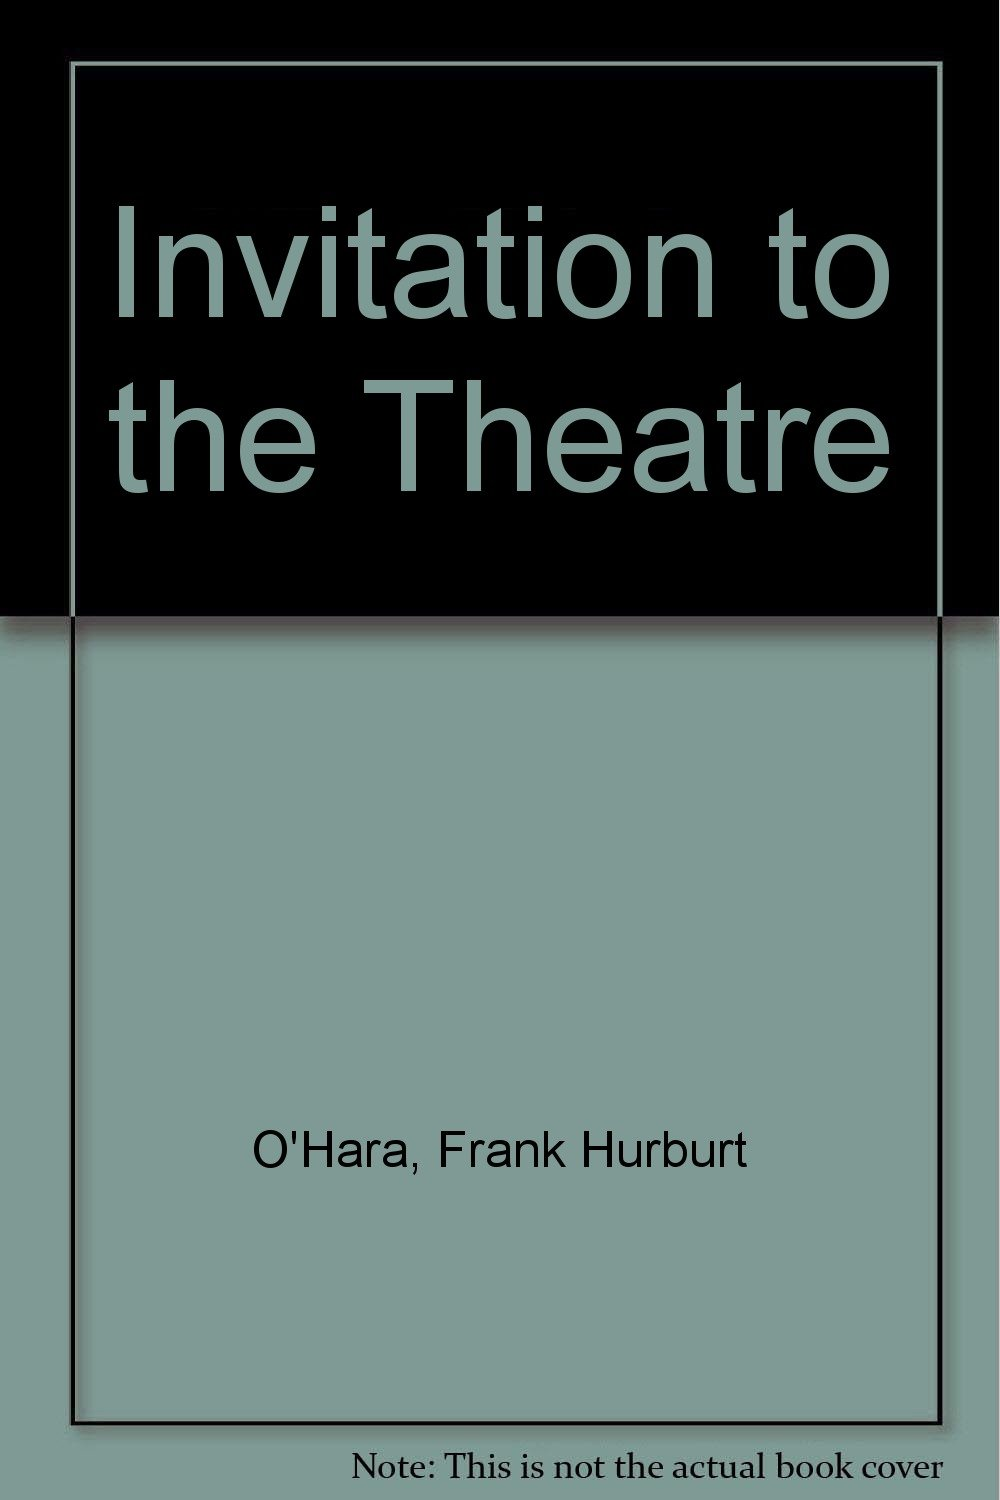 Invitation to the Theater book written by Frank Hurburt O'Hara